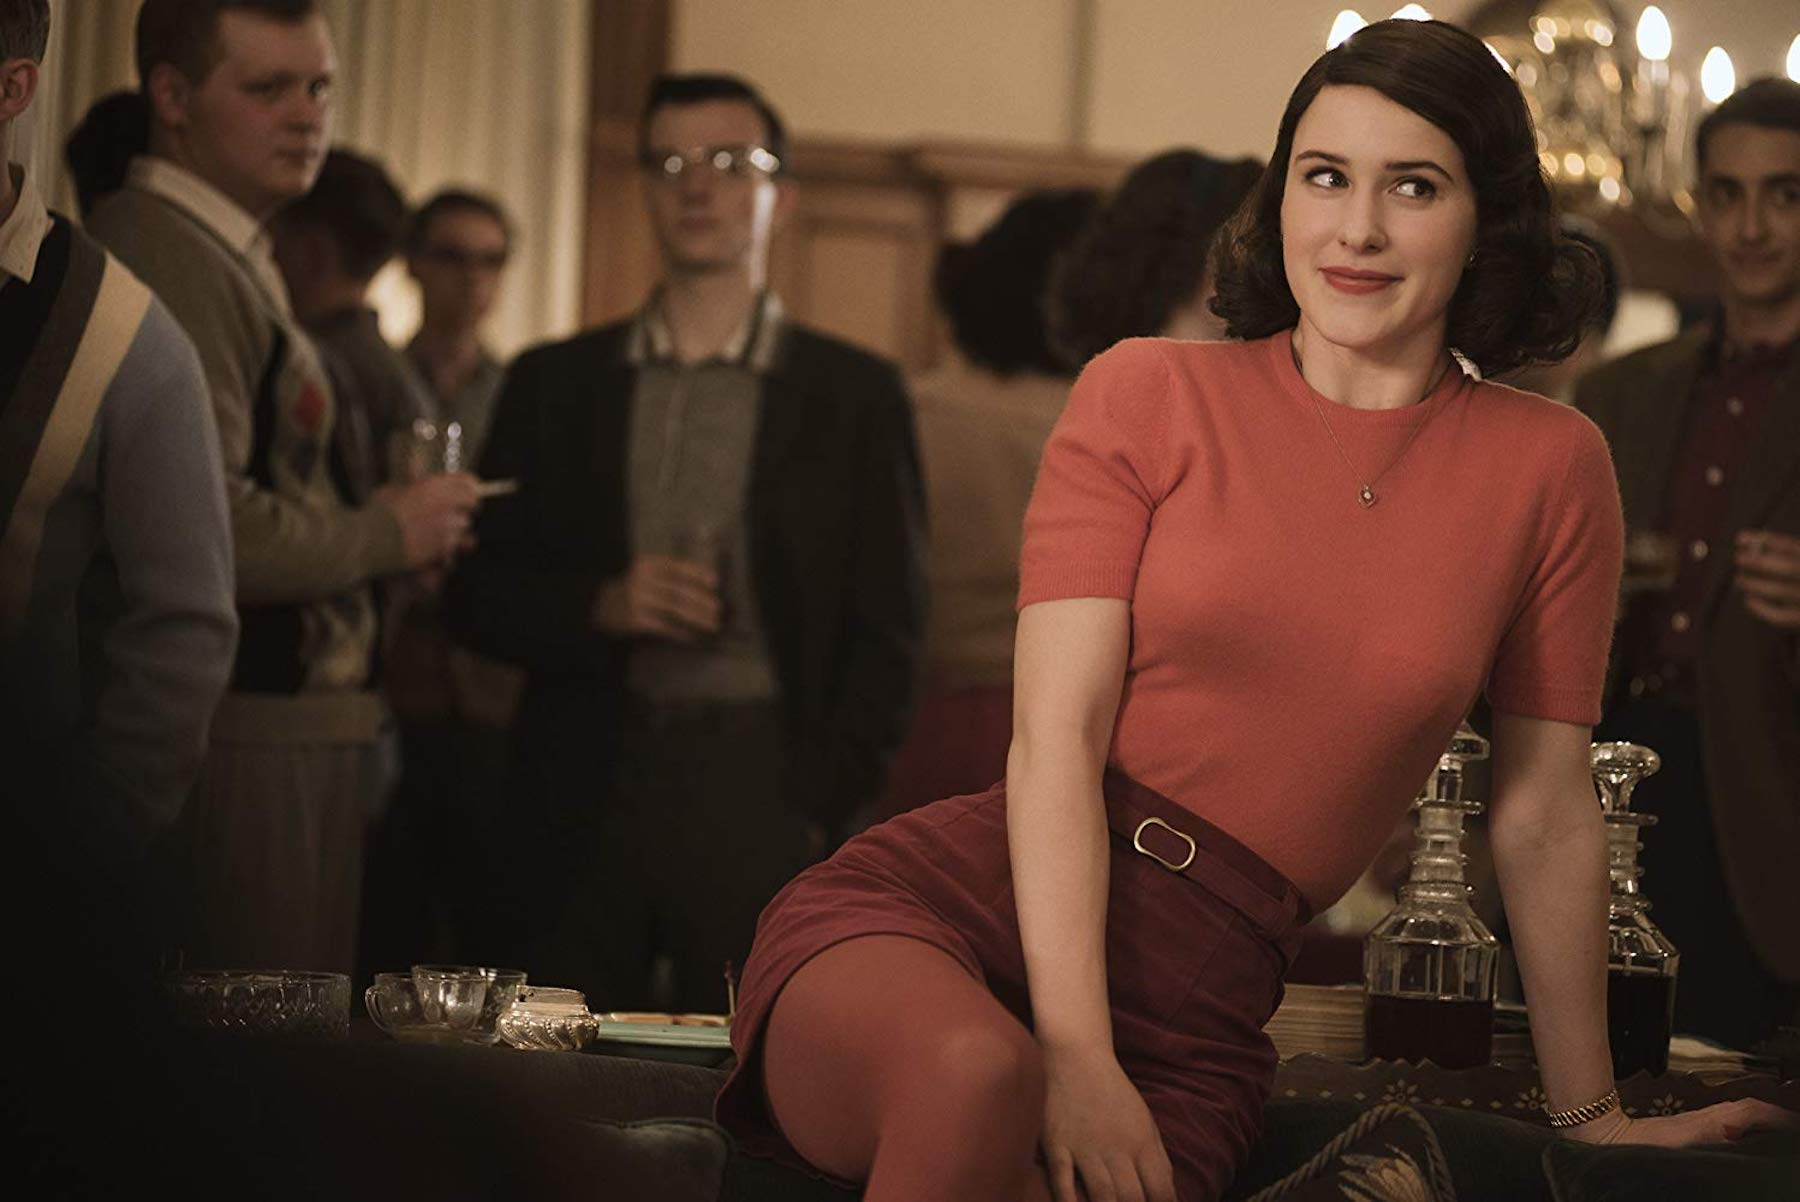 'The Marvelous Mrs. Maisel' follows a Jewish housewife who uses her newfound comedic talent to rebuild a different life for herself.